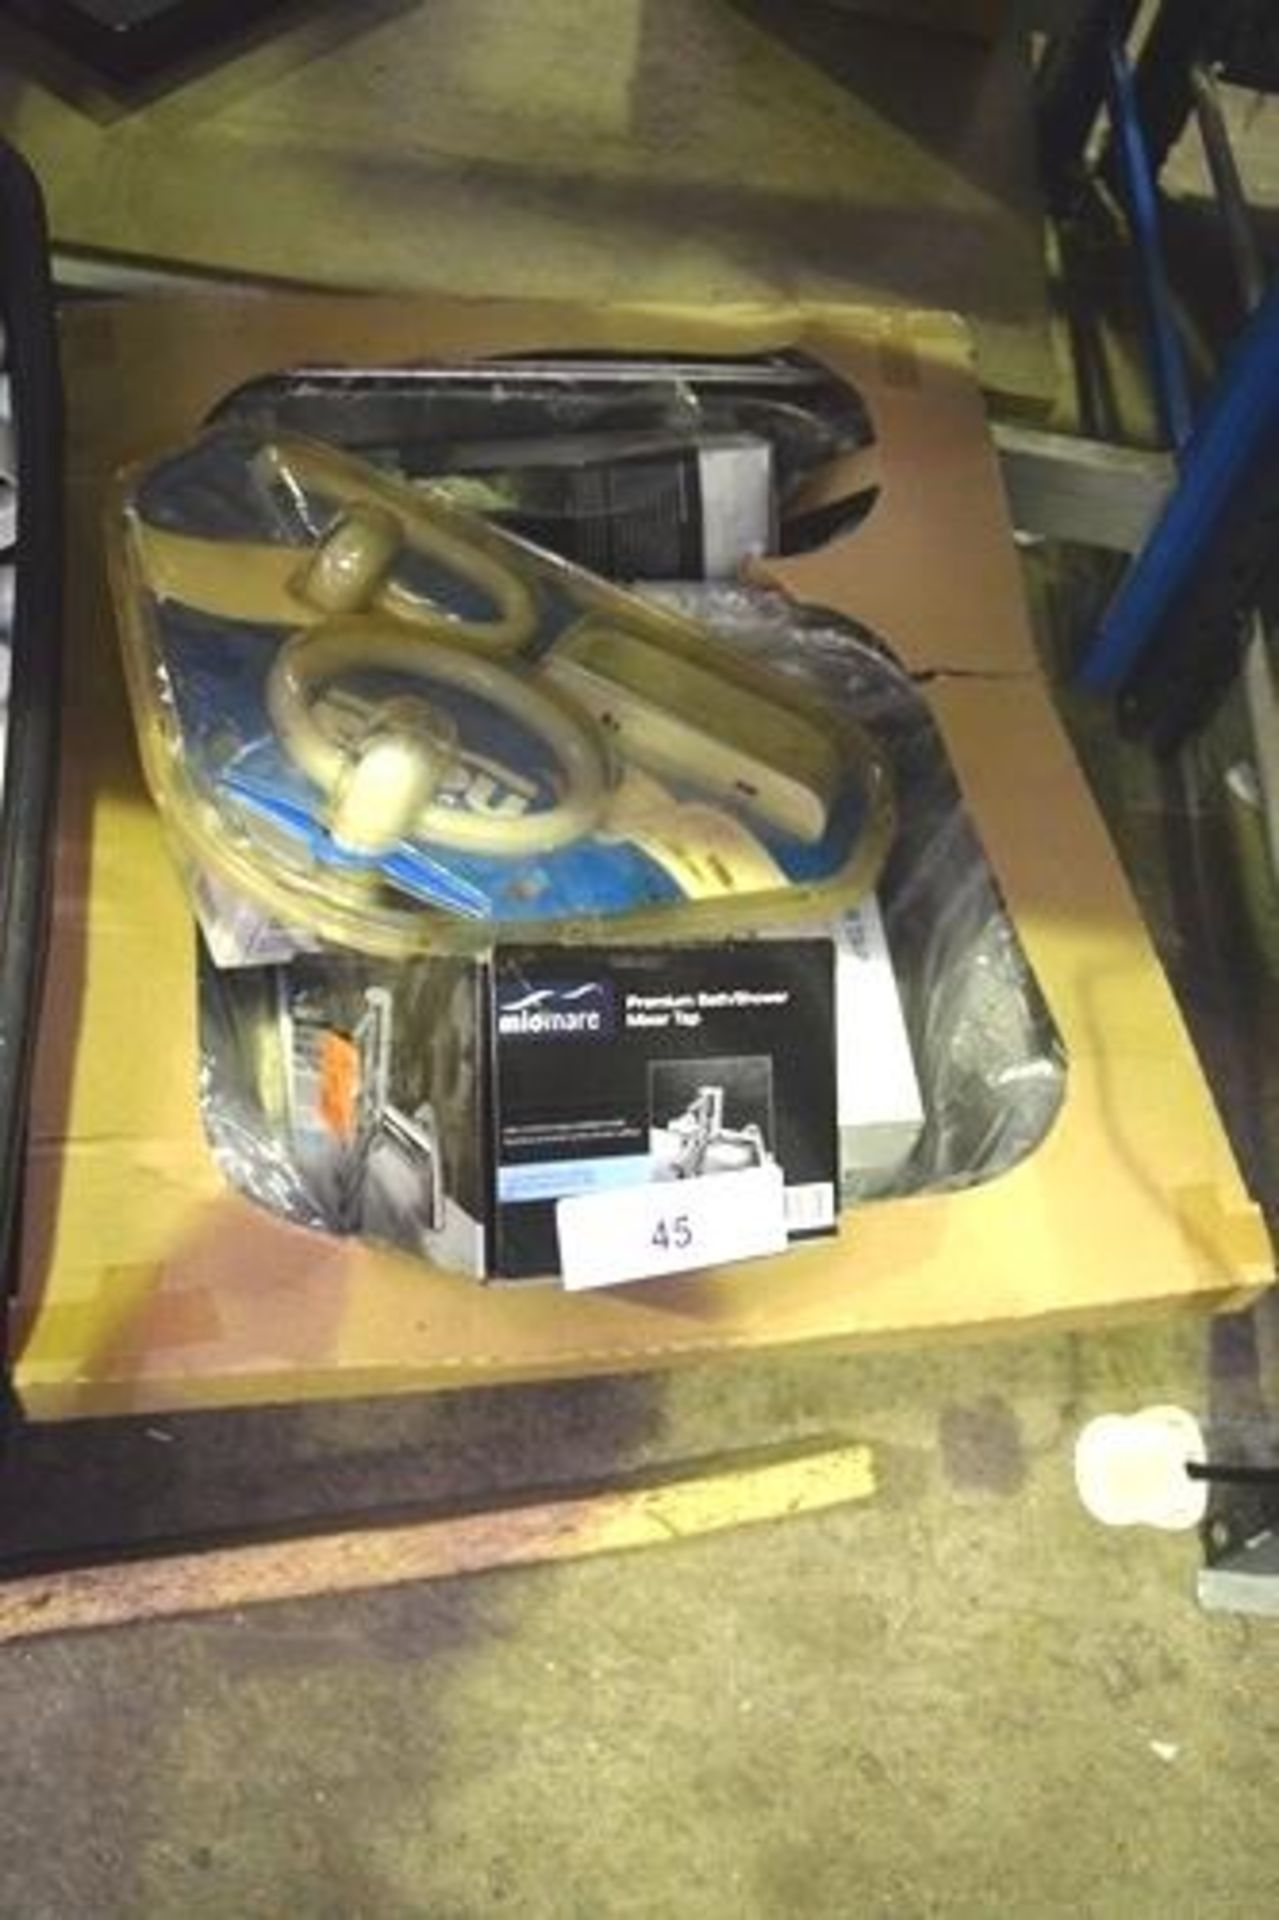 Lot 45 - 2 x boxes of assorted plumbing parts including taps, stainless steel single bowl sink - Second-